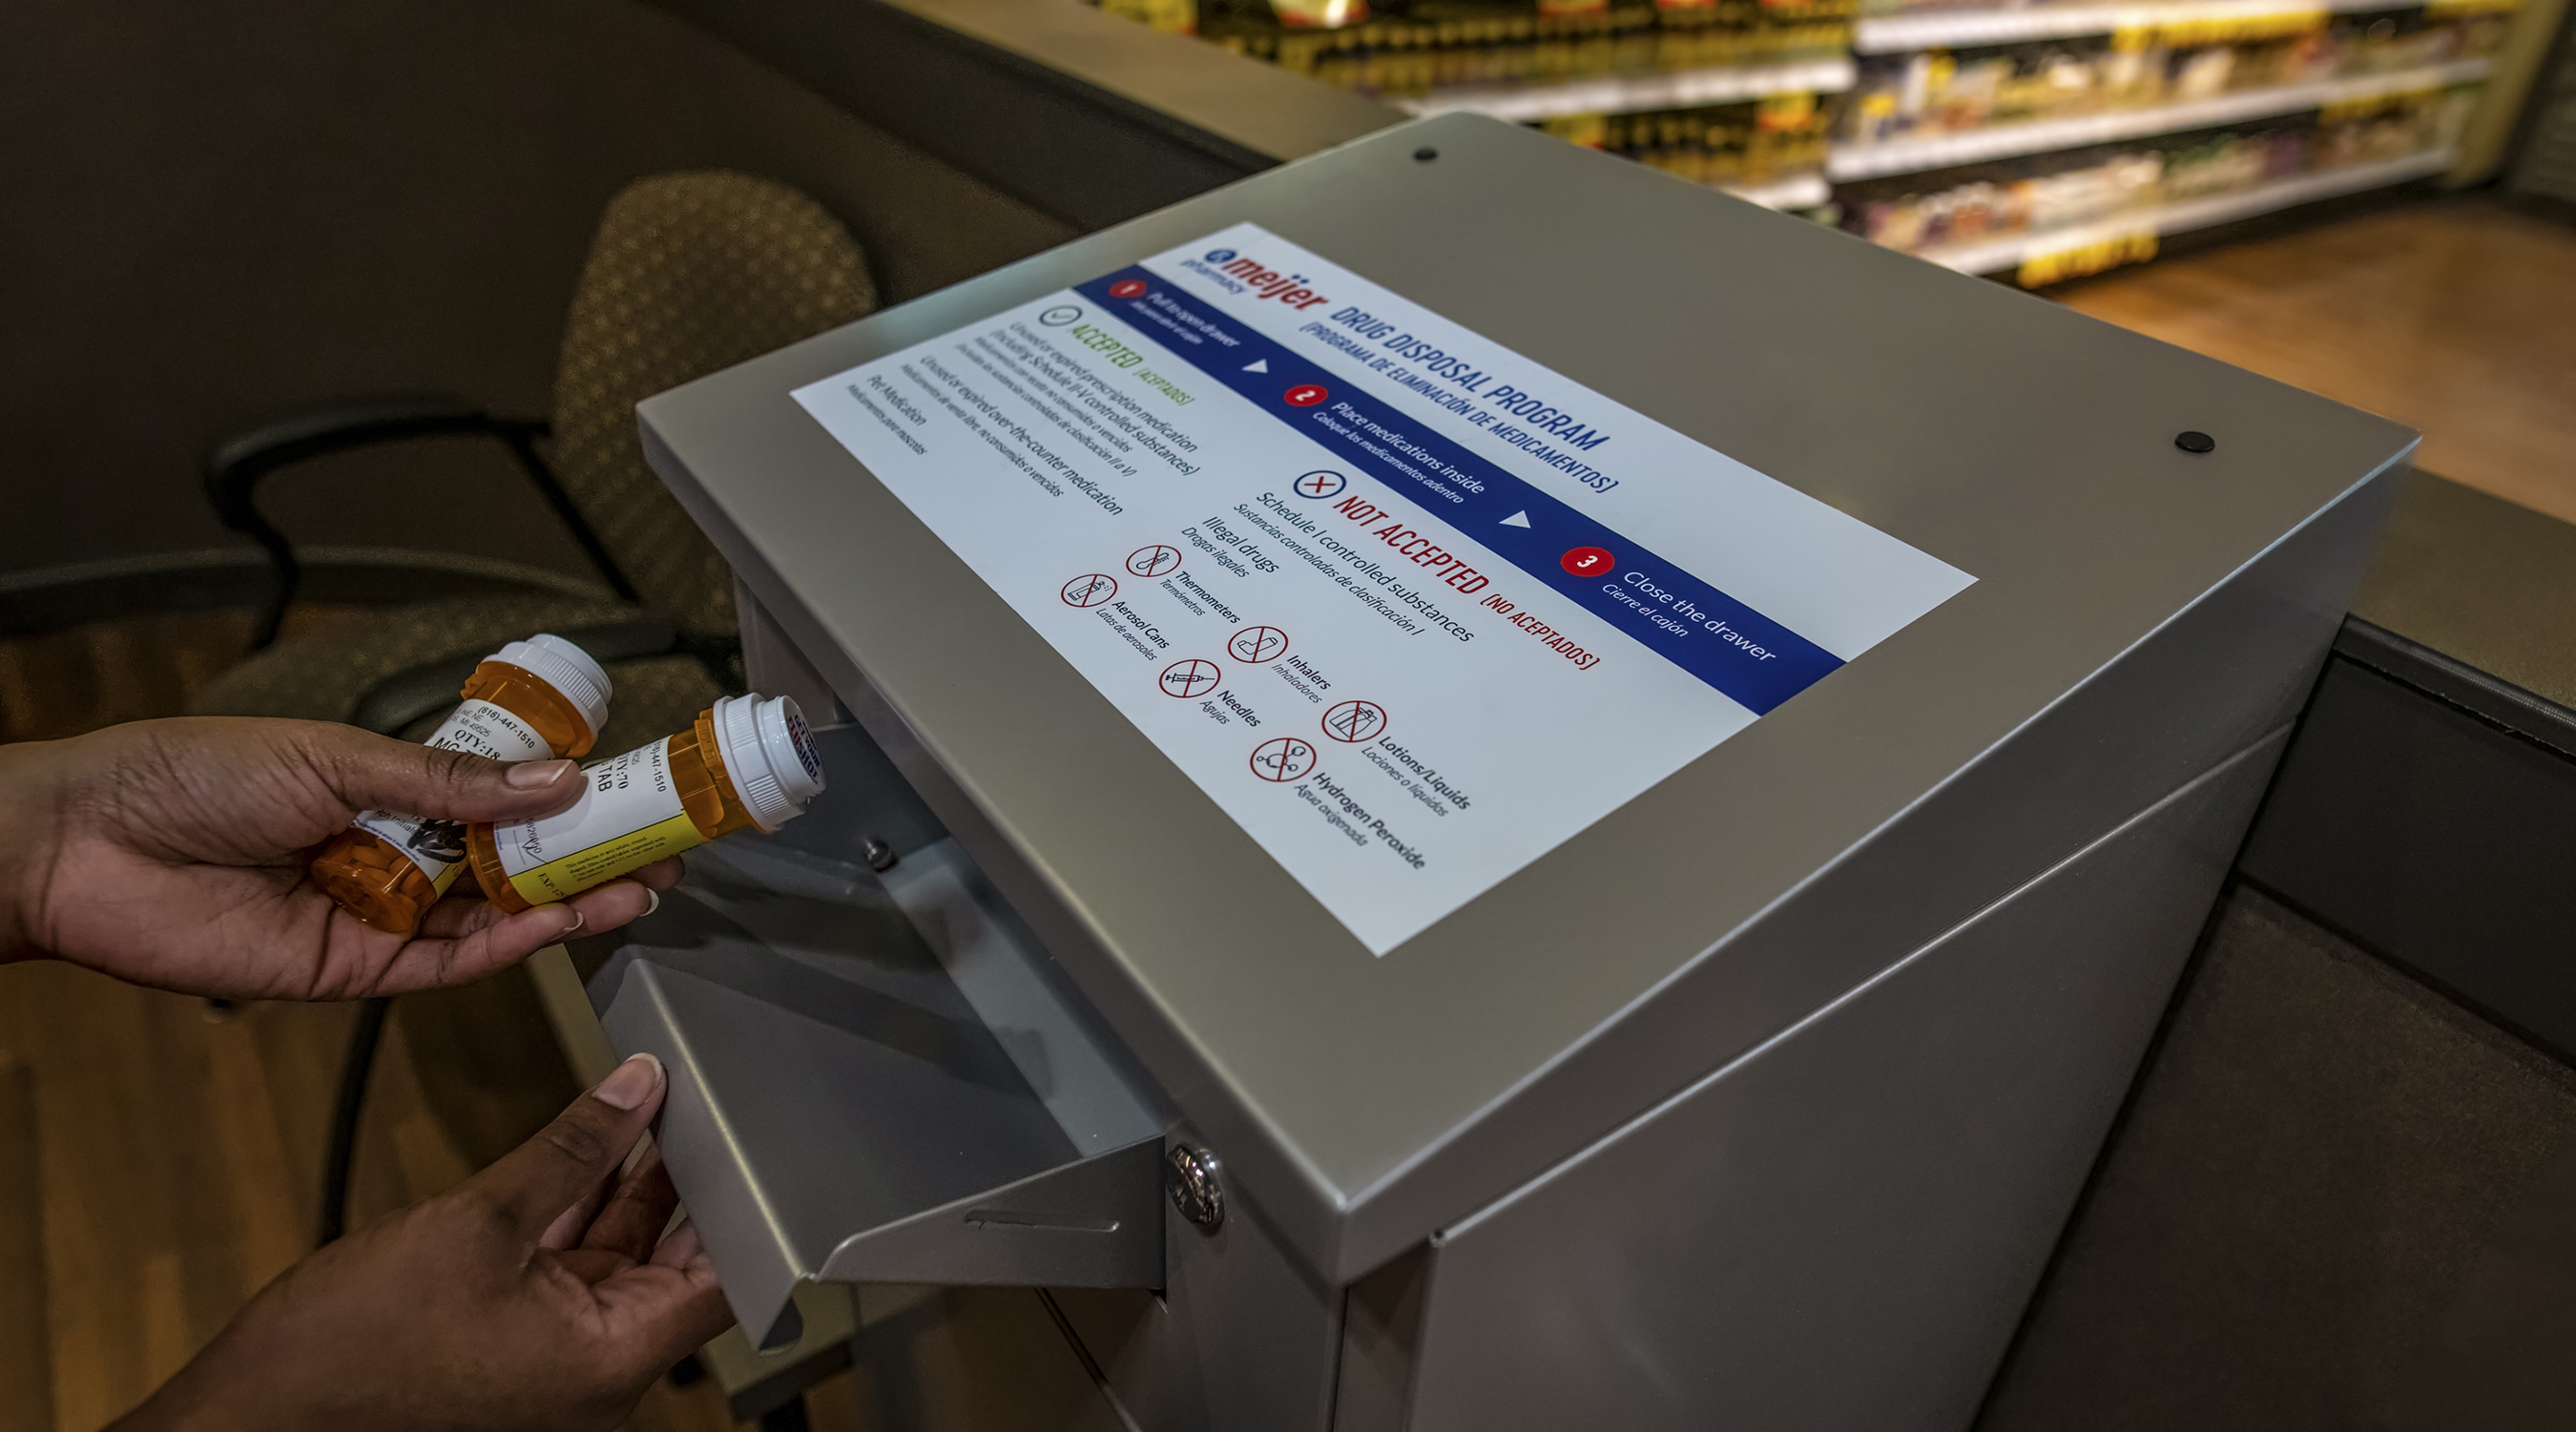 Meijer installed secure, in-store kiosks for customers to safely dispose of unused or expired medications